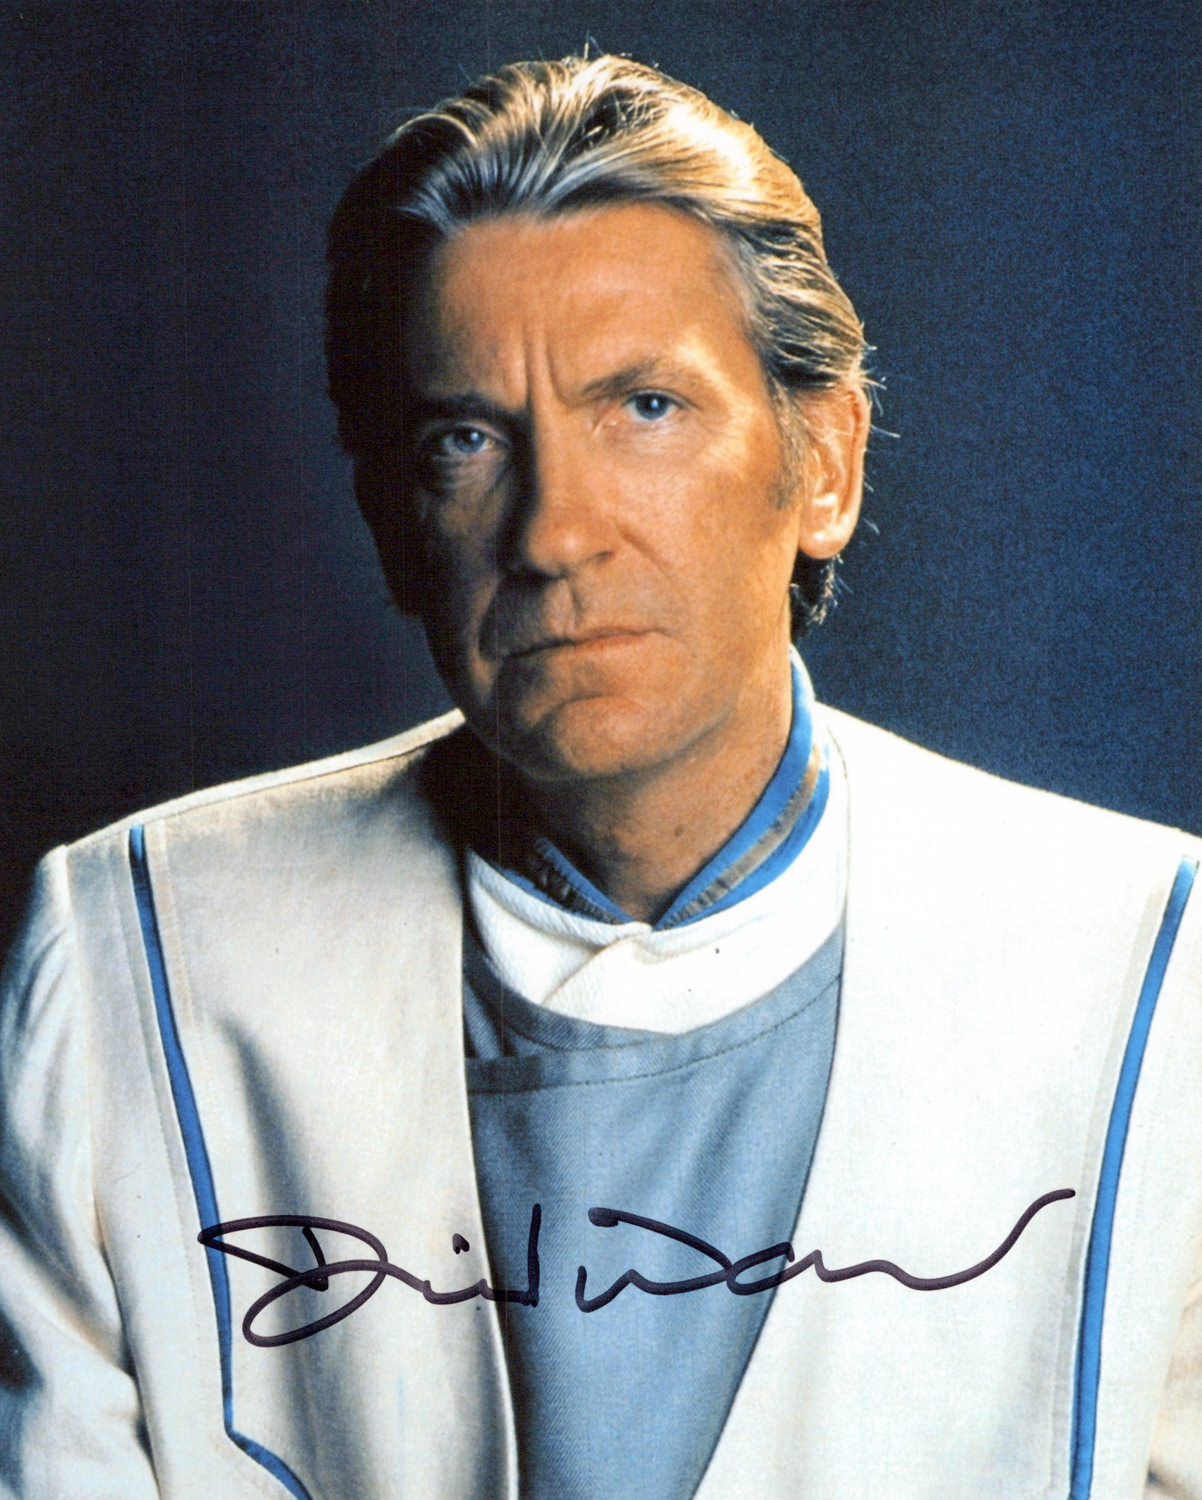 David Warner Original Autogramm auf Foto 20x25cm - Star Trek